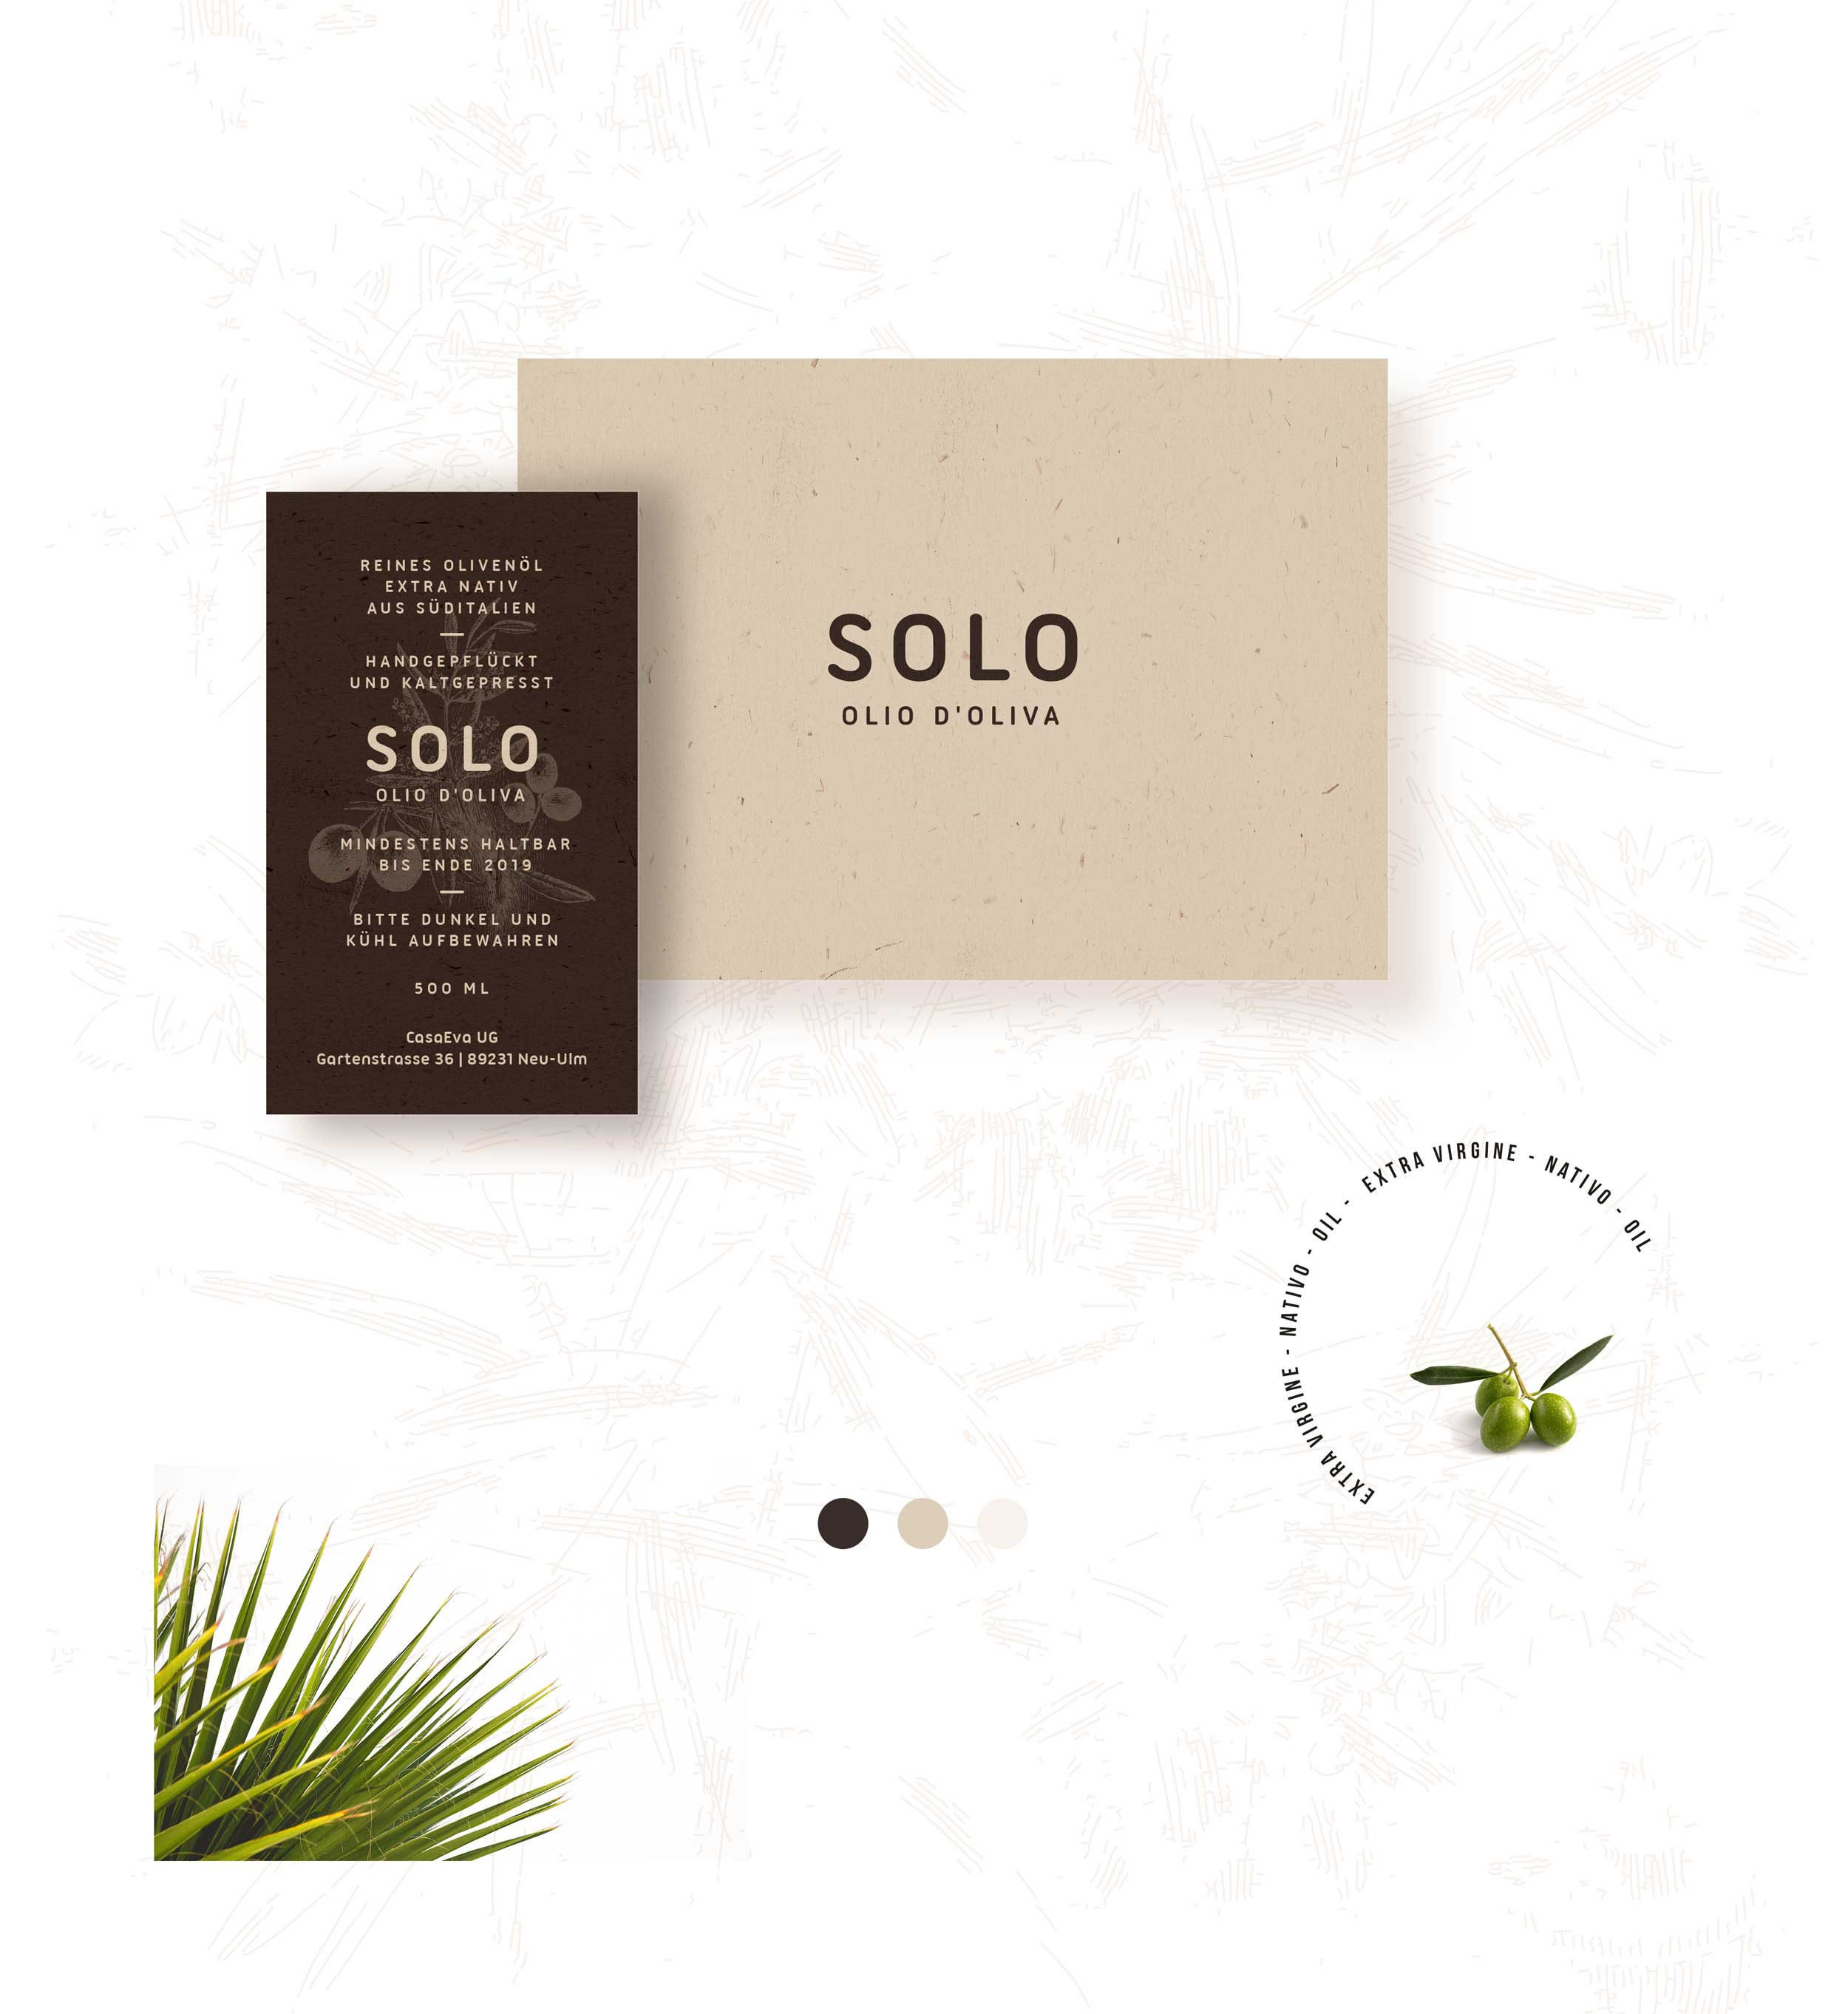 solo-olio-oliva-design-branding-packaging-label-logo-blockundstift-5